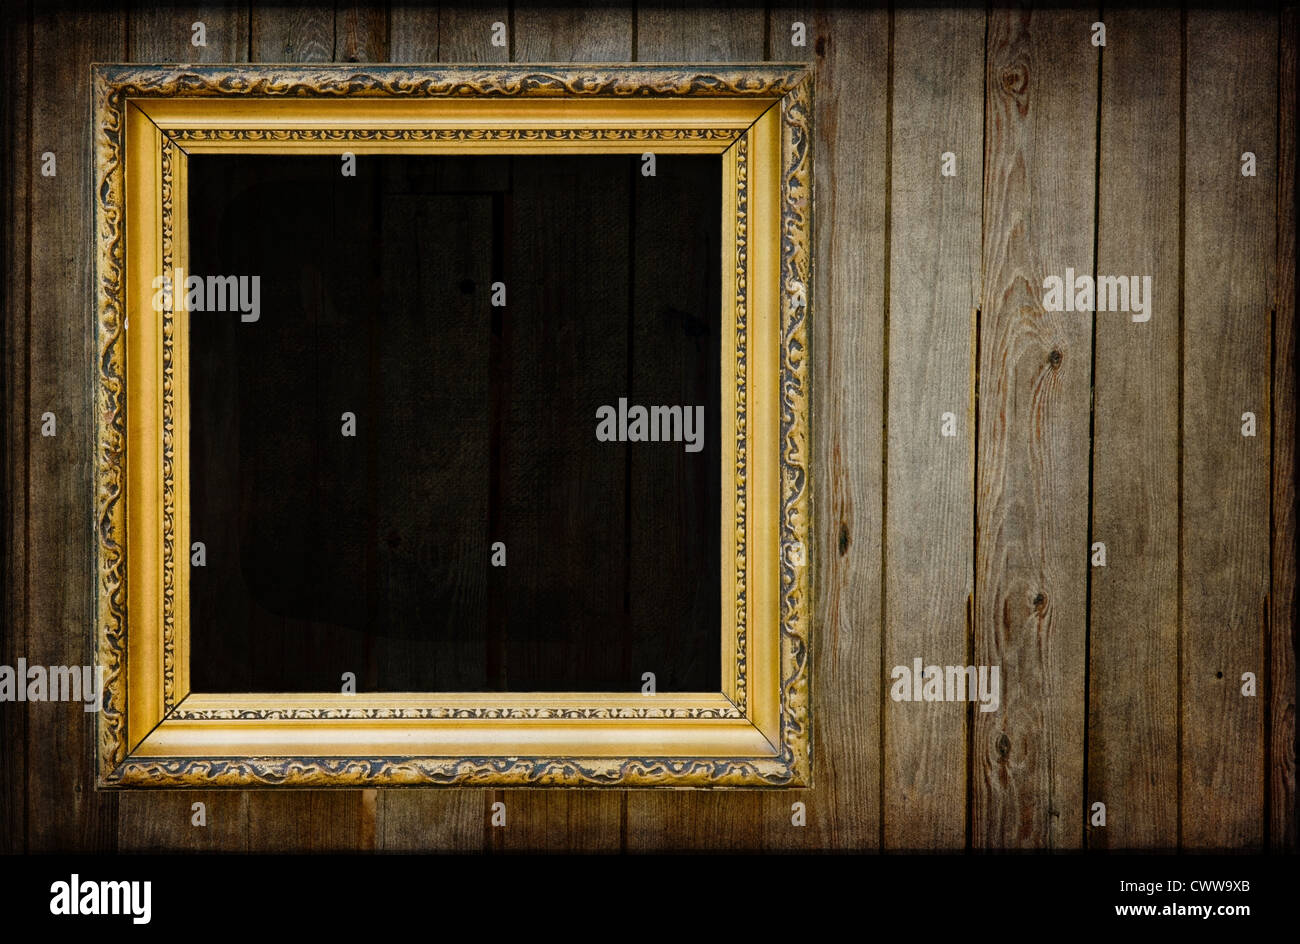 Golden Black Empty Frame On A Wooden Rustic Wall With Vintage Textured Editing